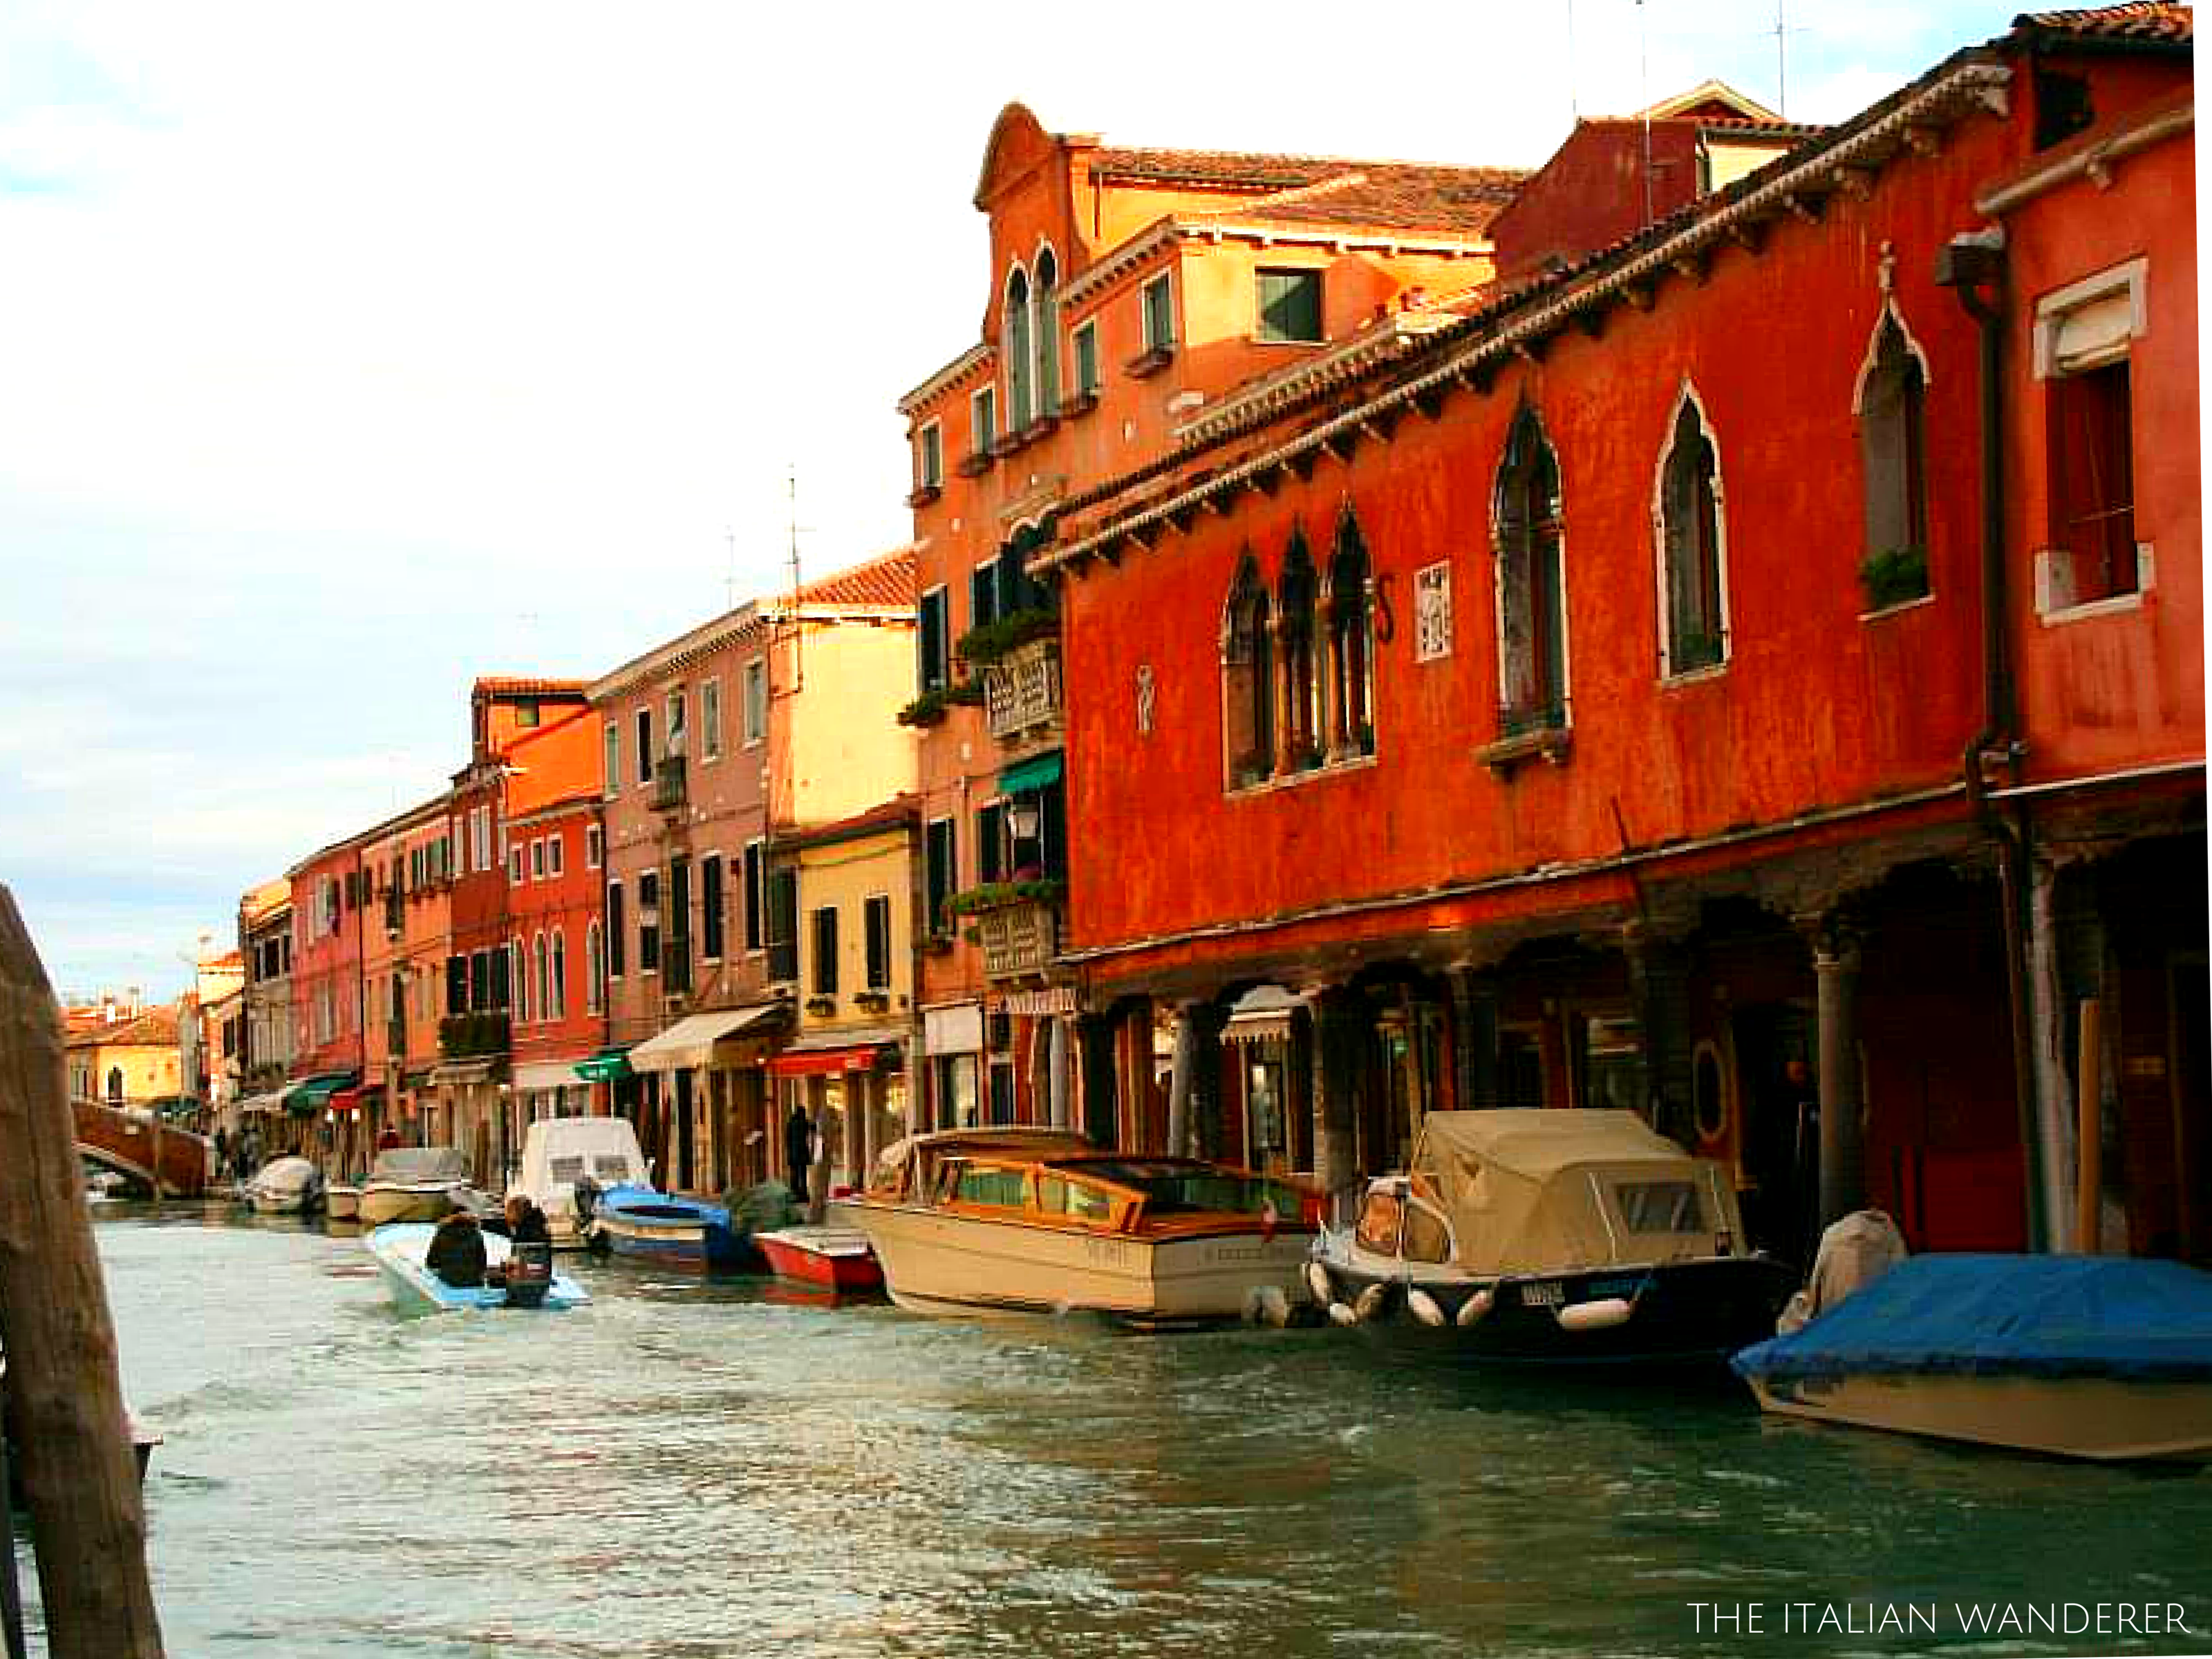 Murano, Venice known for the handmade glass